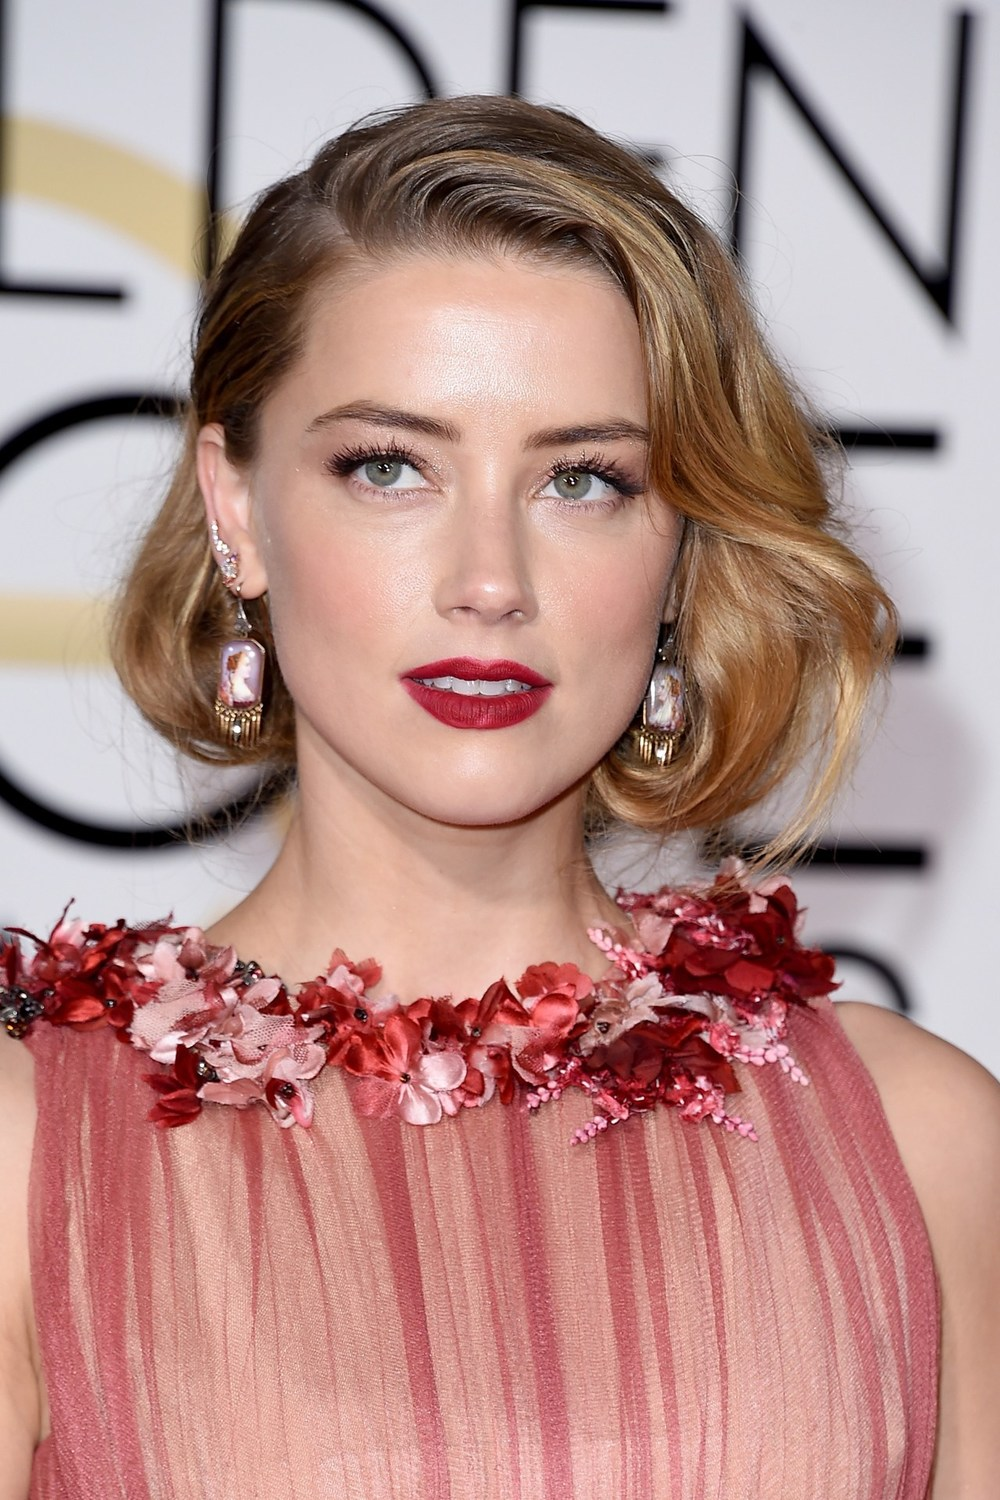 Amber Heard opted for Old Hollywood glamour, with curled hair worn in a faux bob, matt red lips and eyes defined with metallic shadow.